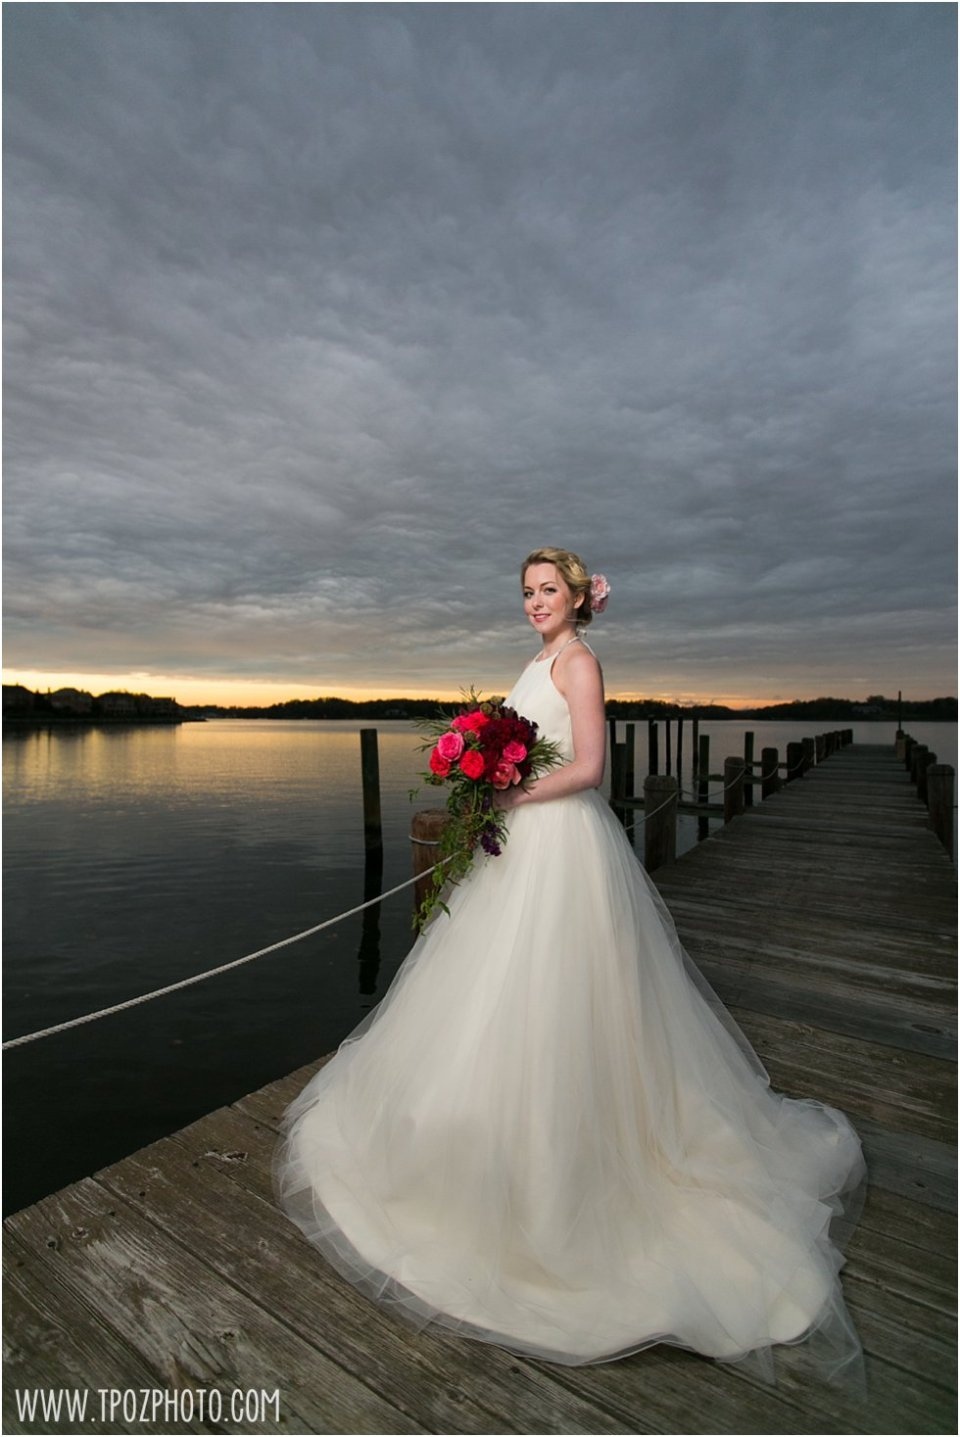 Historic London Town Wedding Photo Shoot, Annapolis  •  tPoz Photography  •  www.tpozphoto.com